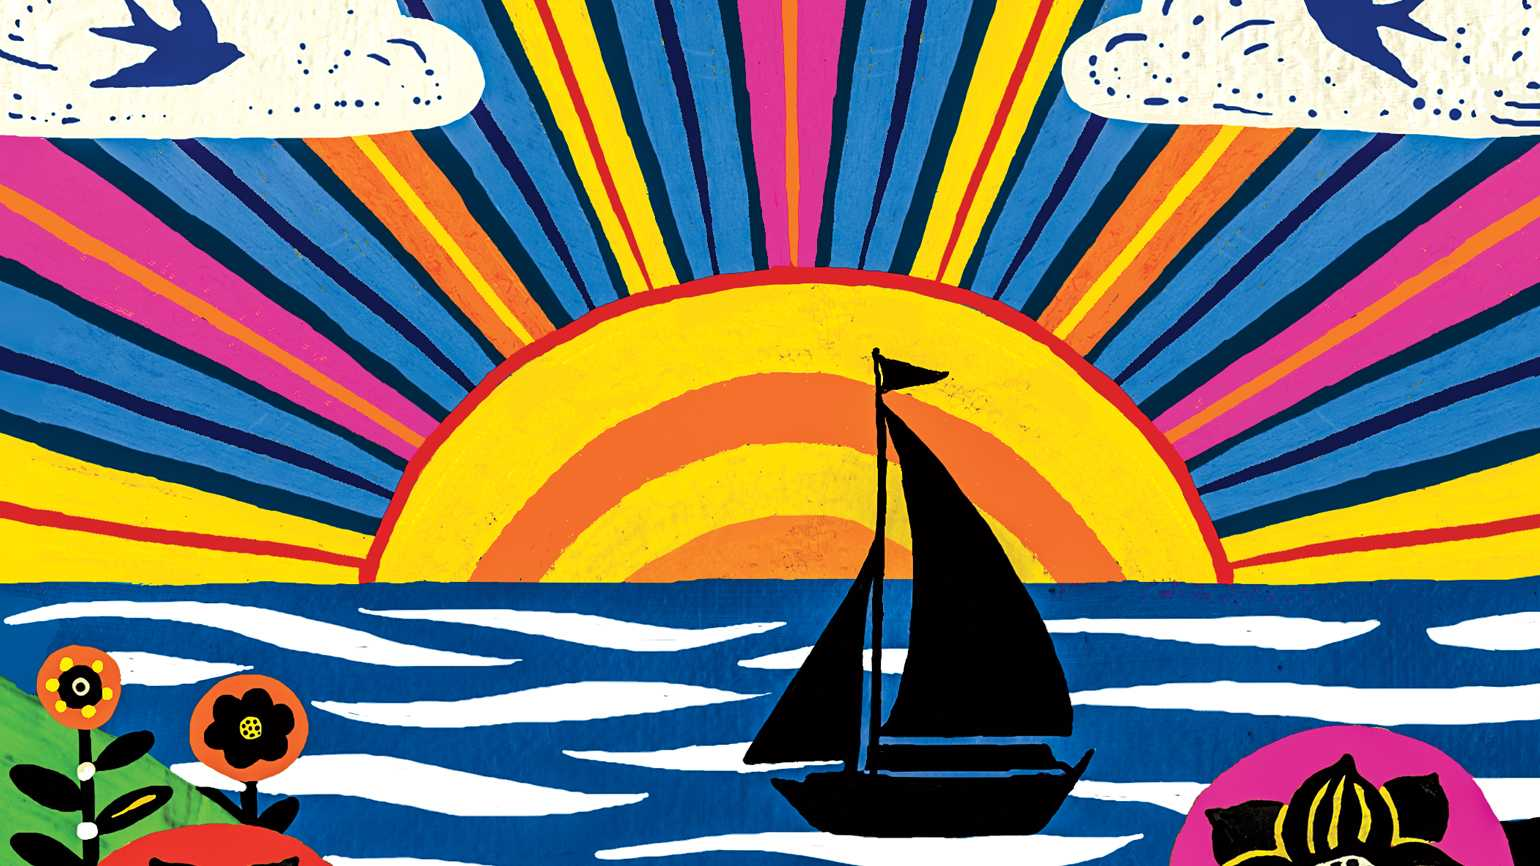 An illustration of a sailboat on the wter as the sun sets; Illustration by Gina Triplett